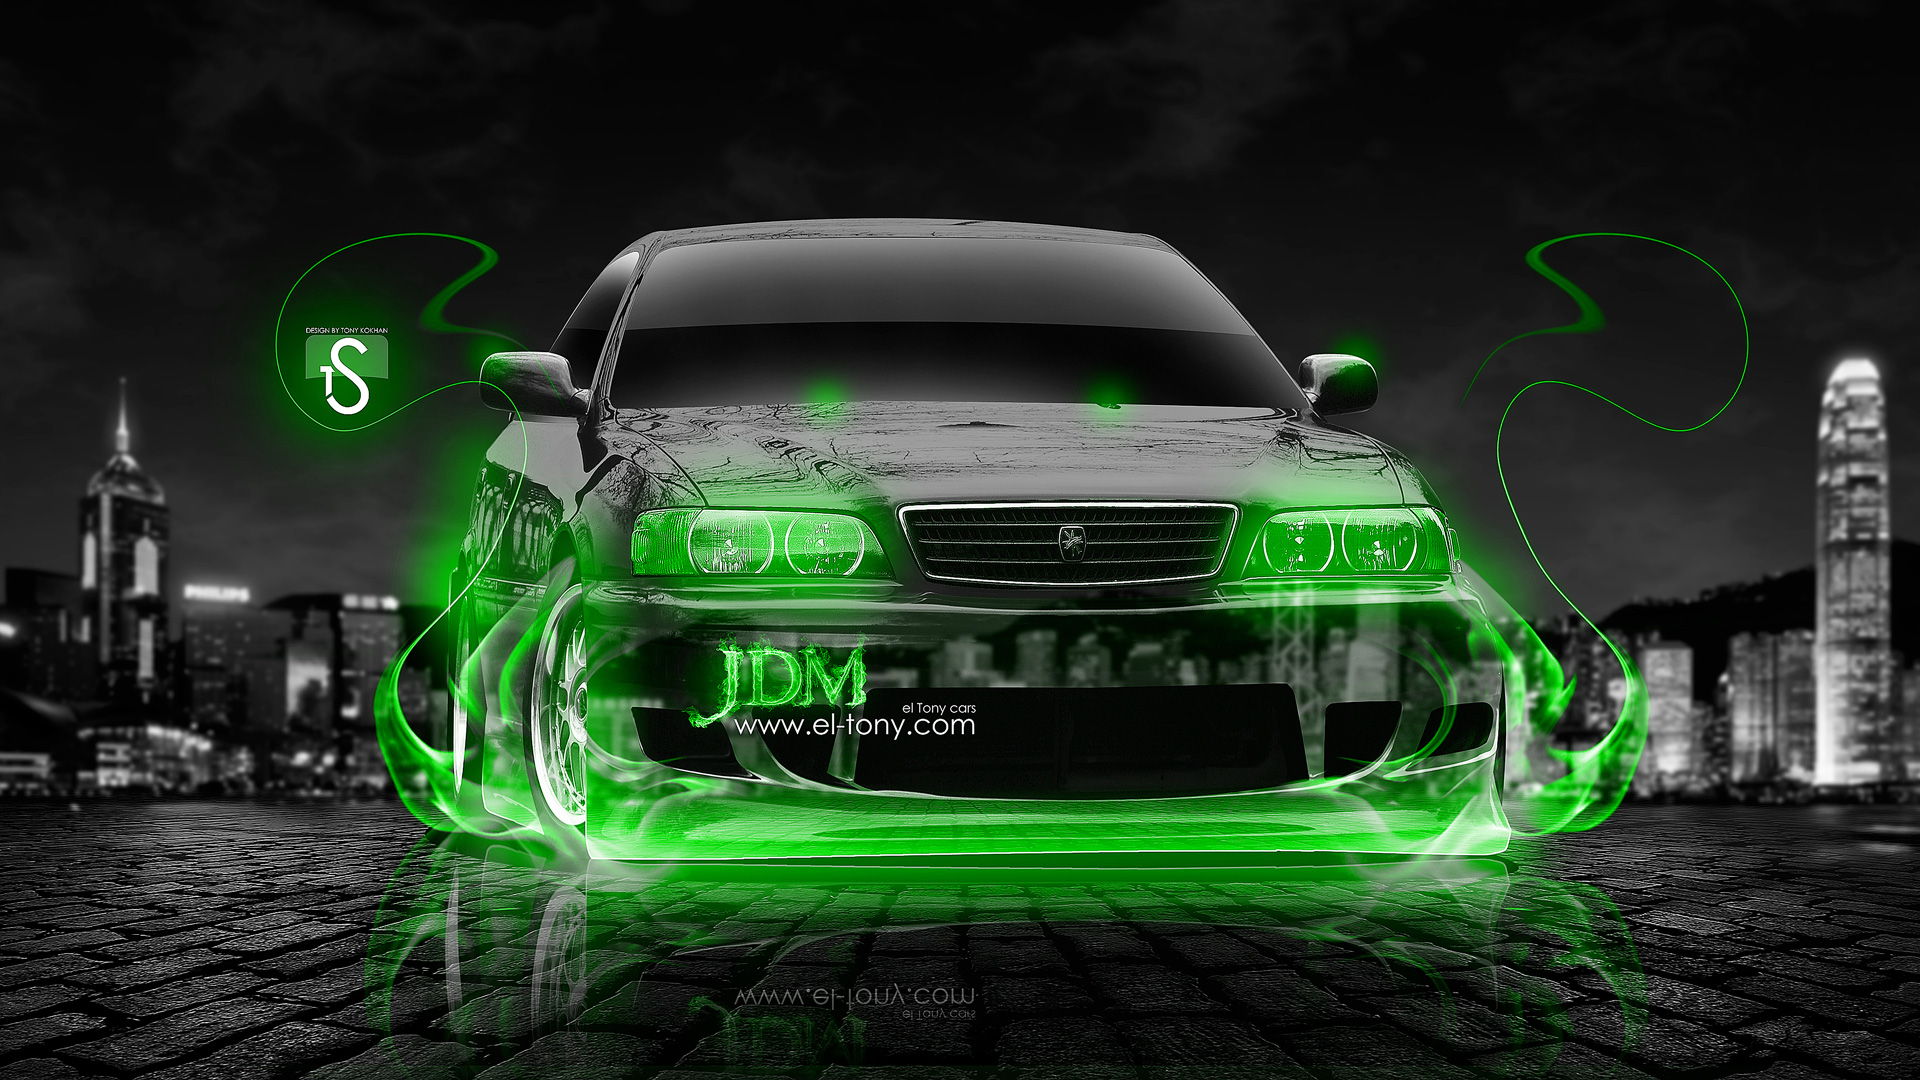 Toyota Chaser JZX100 JDM Green Fire Crystal Car  ...